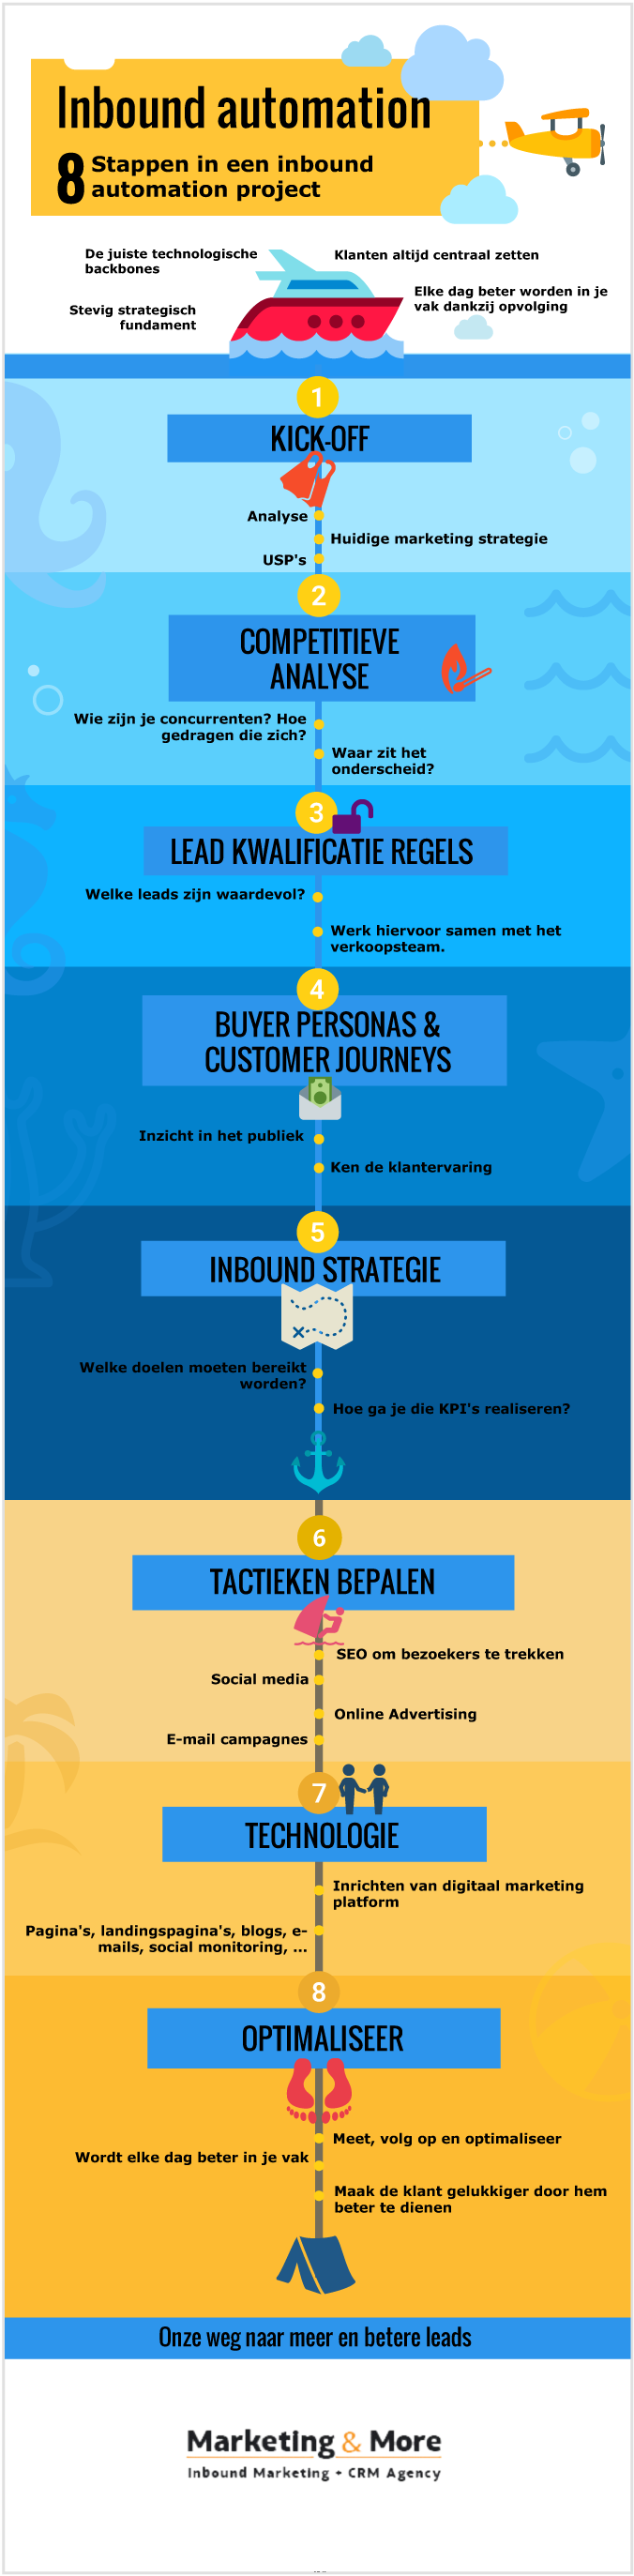 8 stappen in een inbound marketing automation project